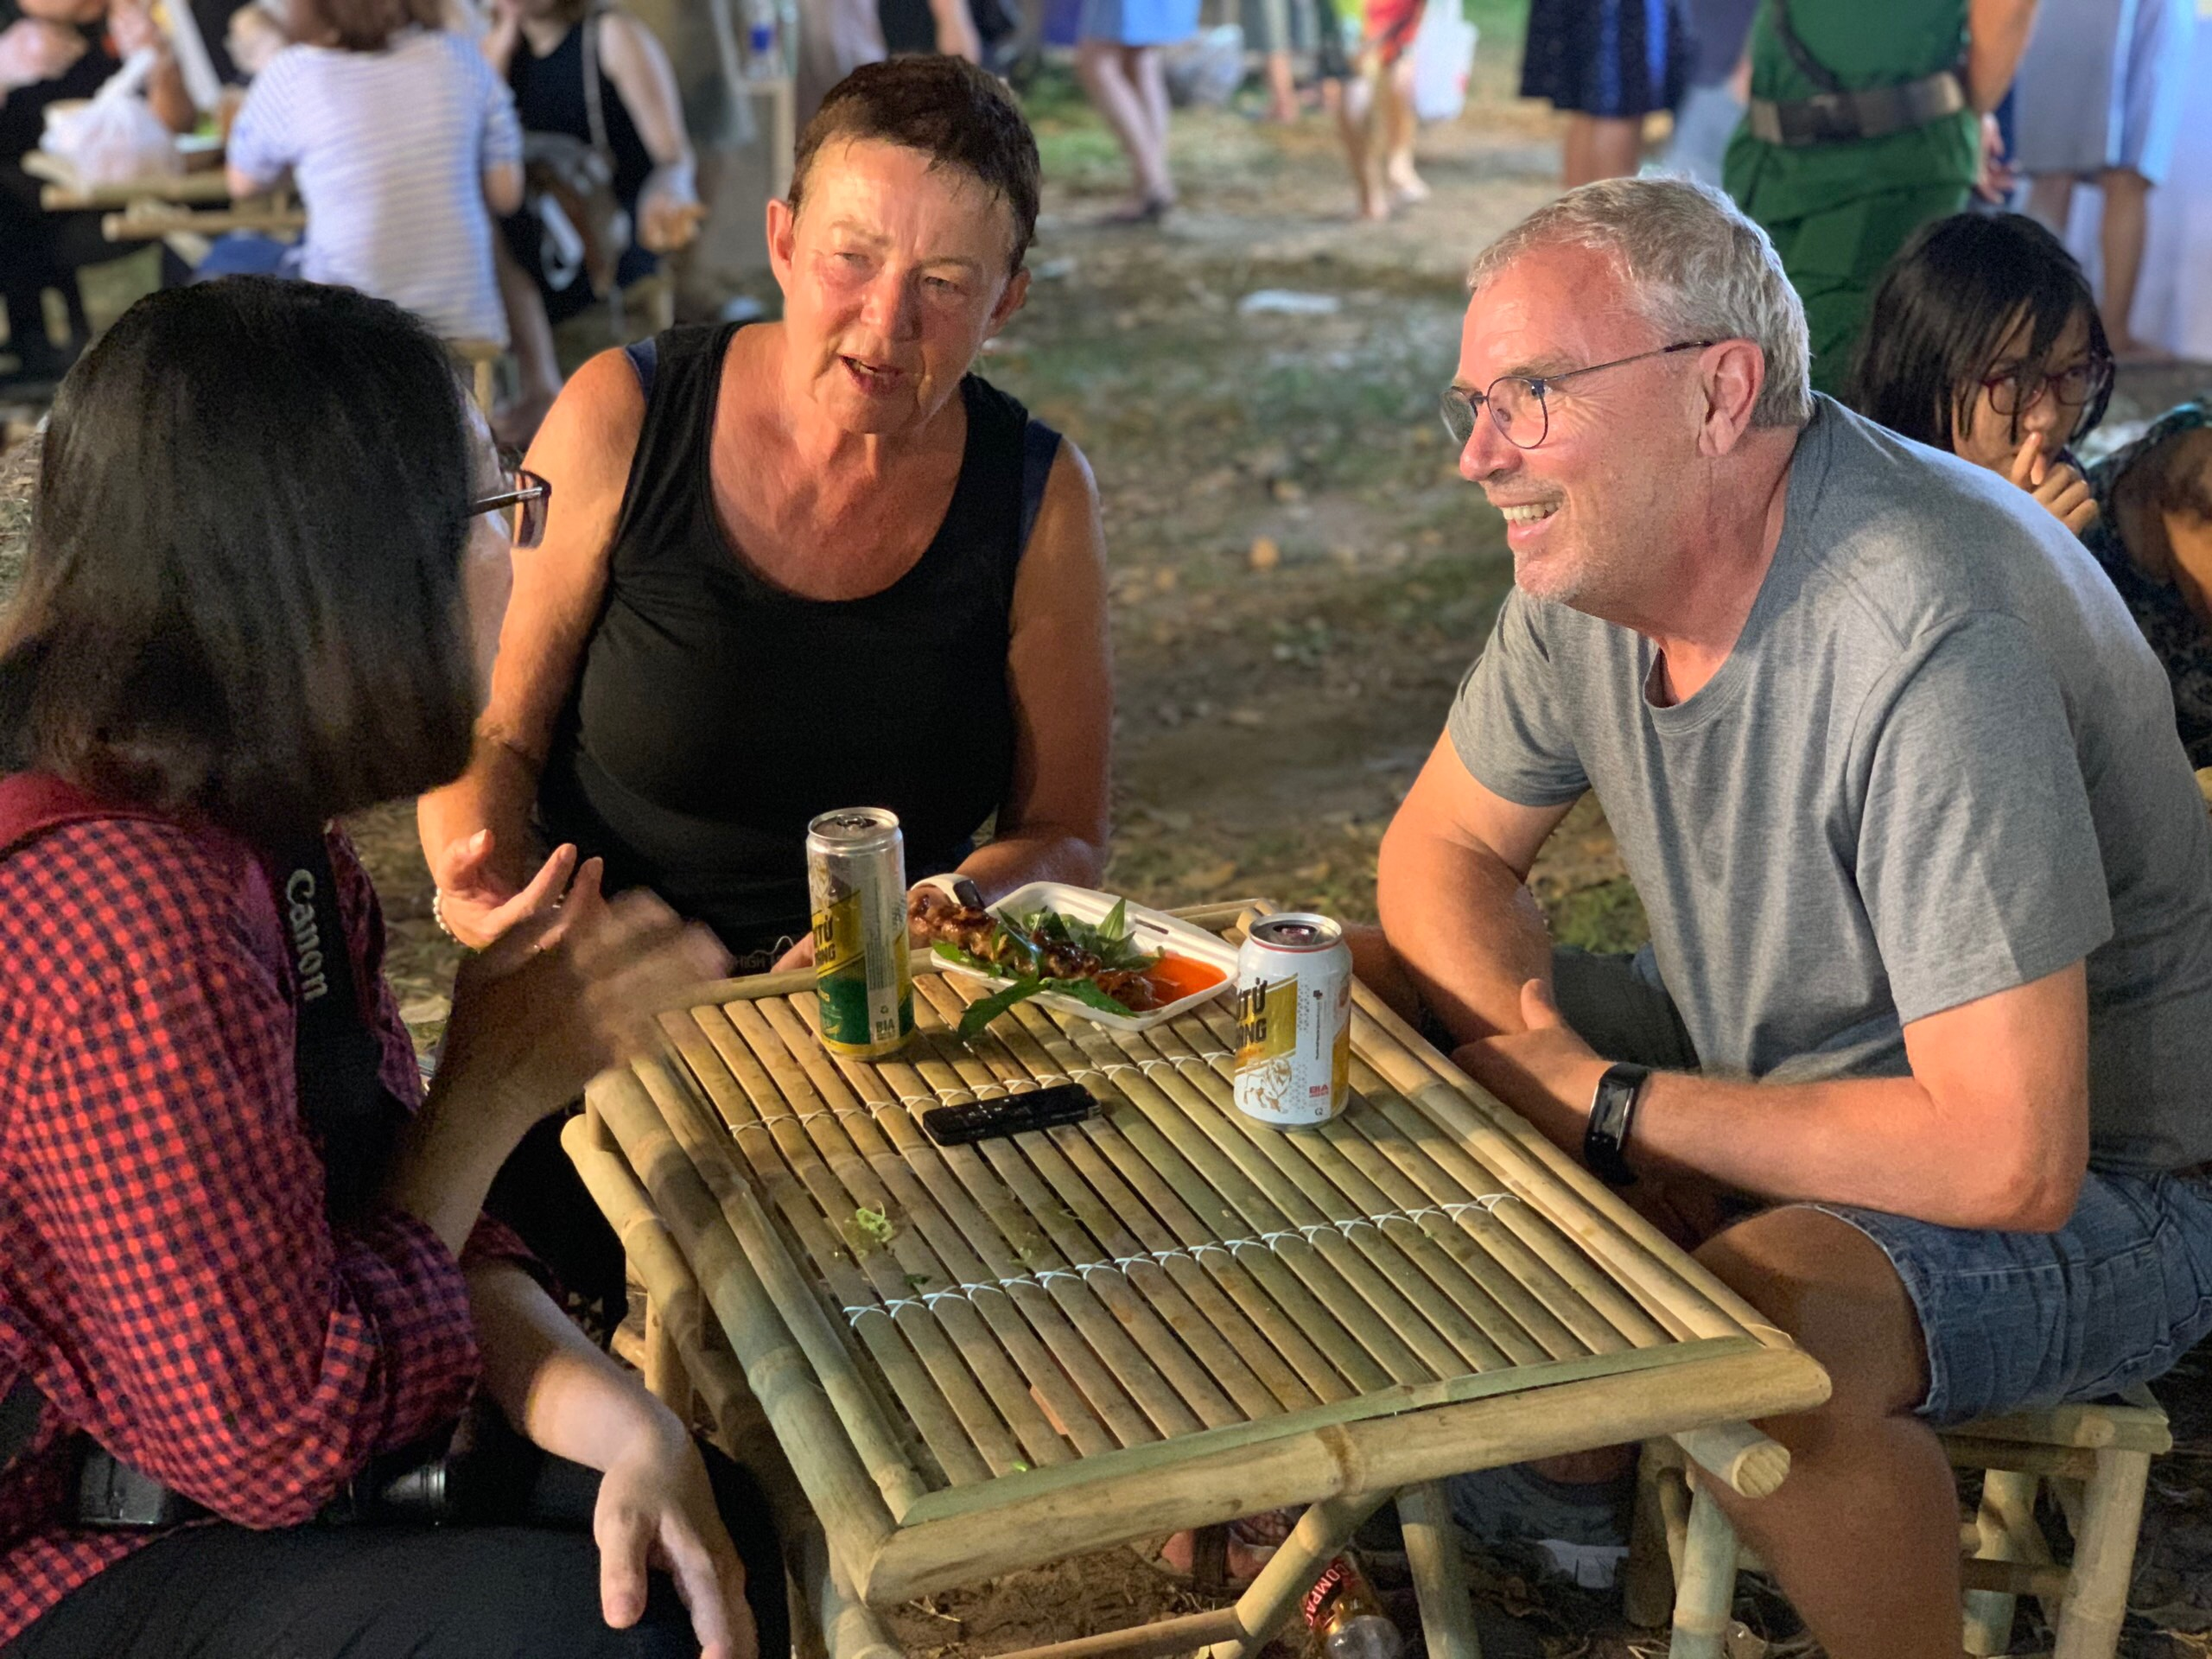 German Joachim Feiden and his wife Petra Kessler at the Tet Festival 2020 at Le Van Tam Park in Ho Chi Minh City's District 1 on January 3, 2020. Photo: Tuoi Tre News/ Bao Anh